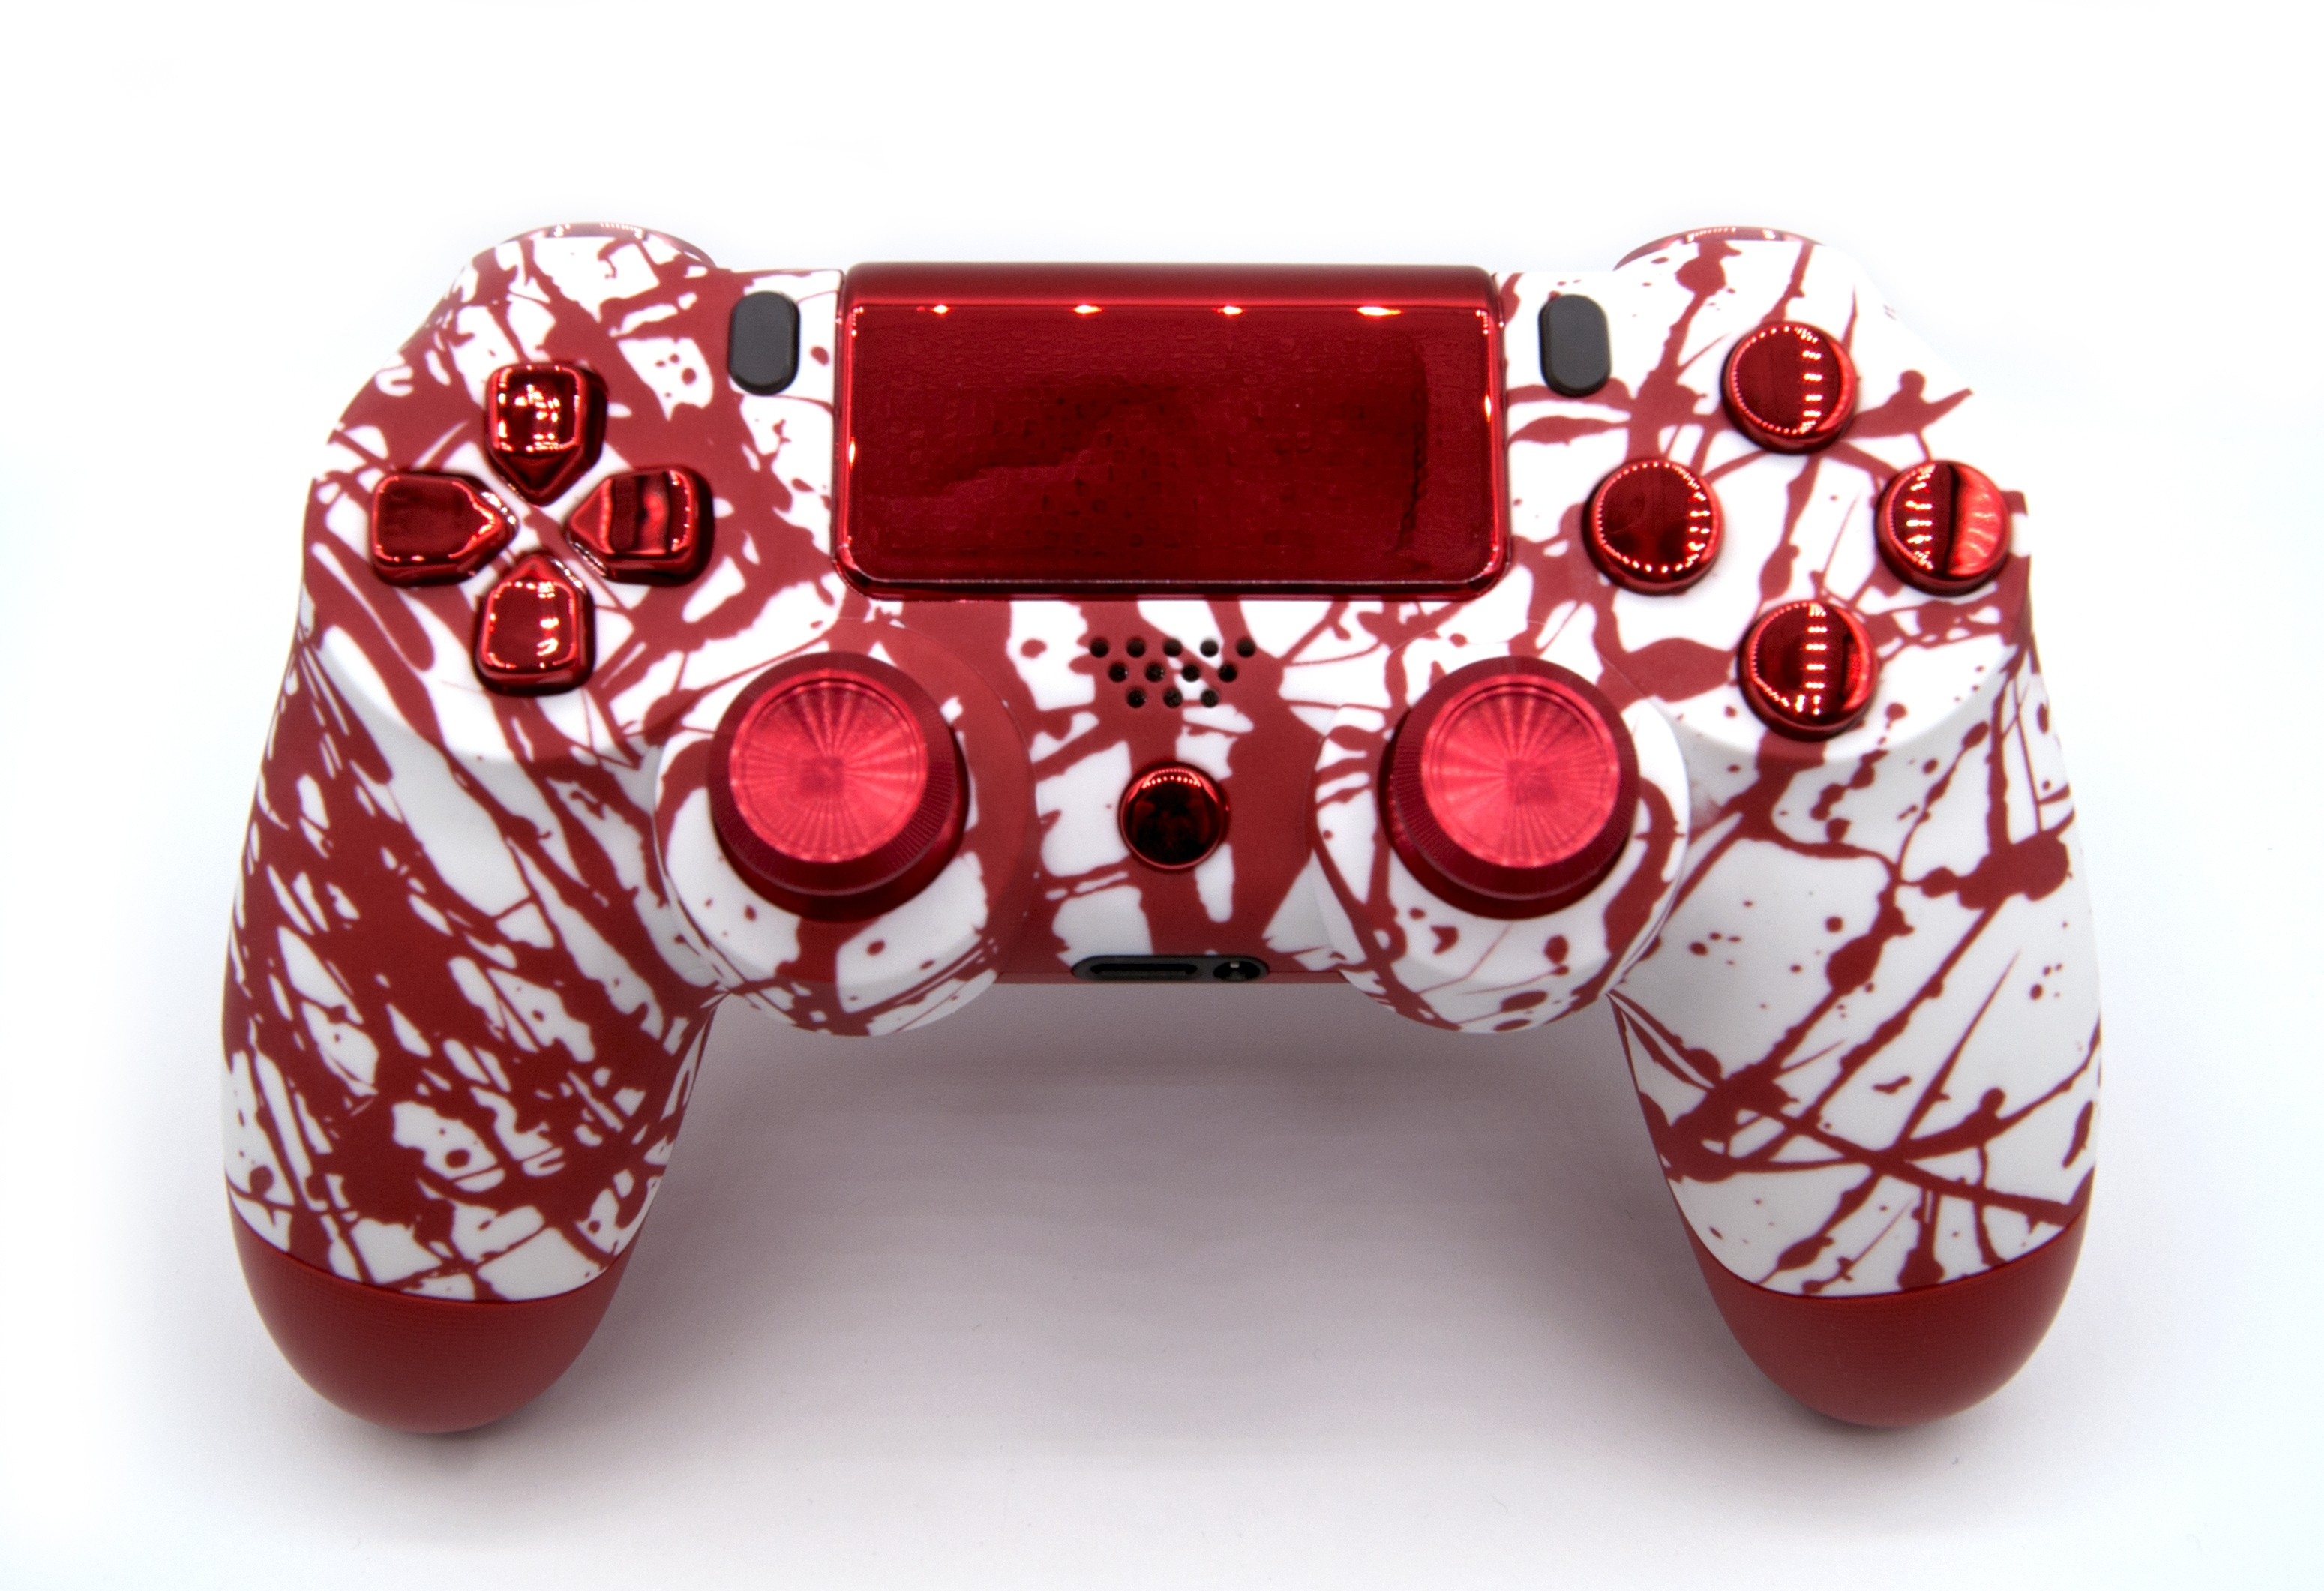 Bloody Splatter Playstation 4 V2 Custom Modded Controller